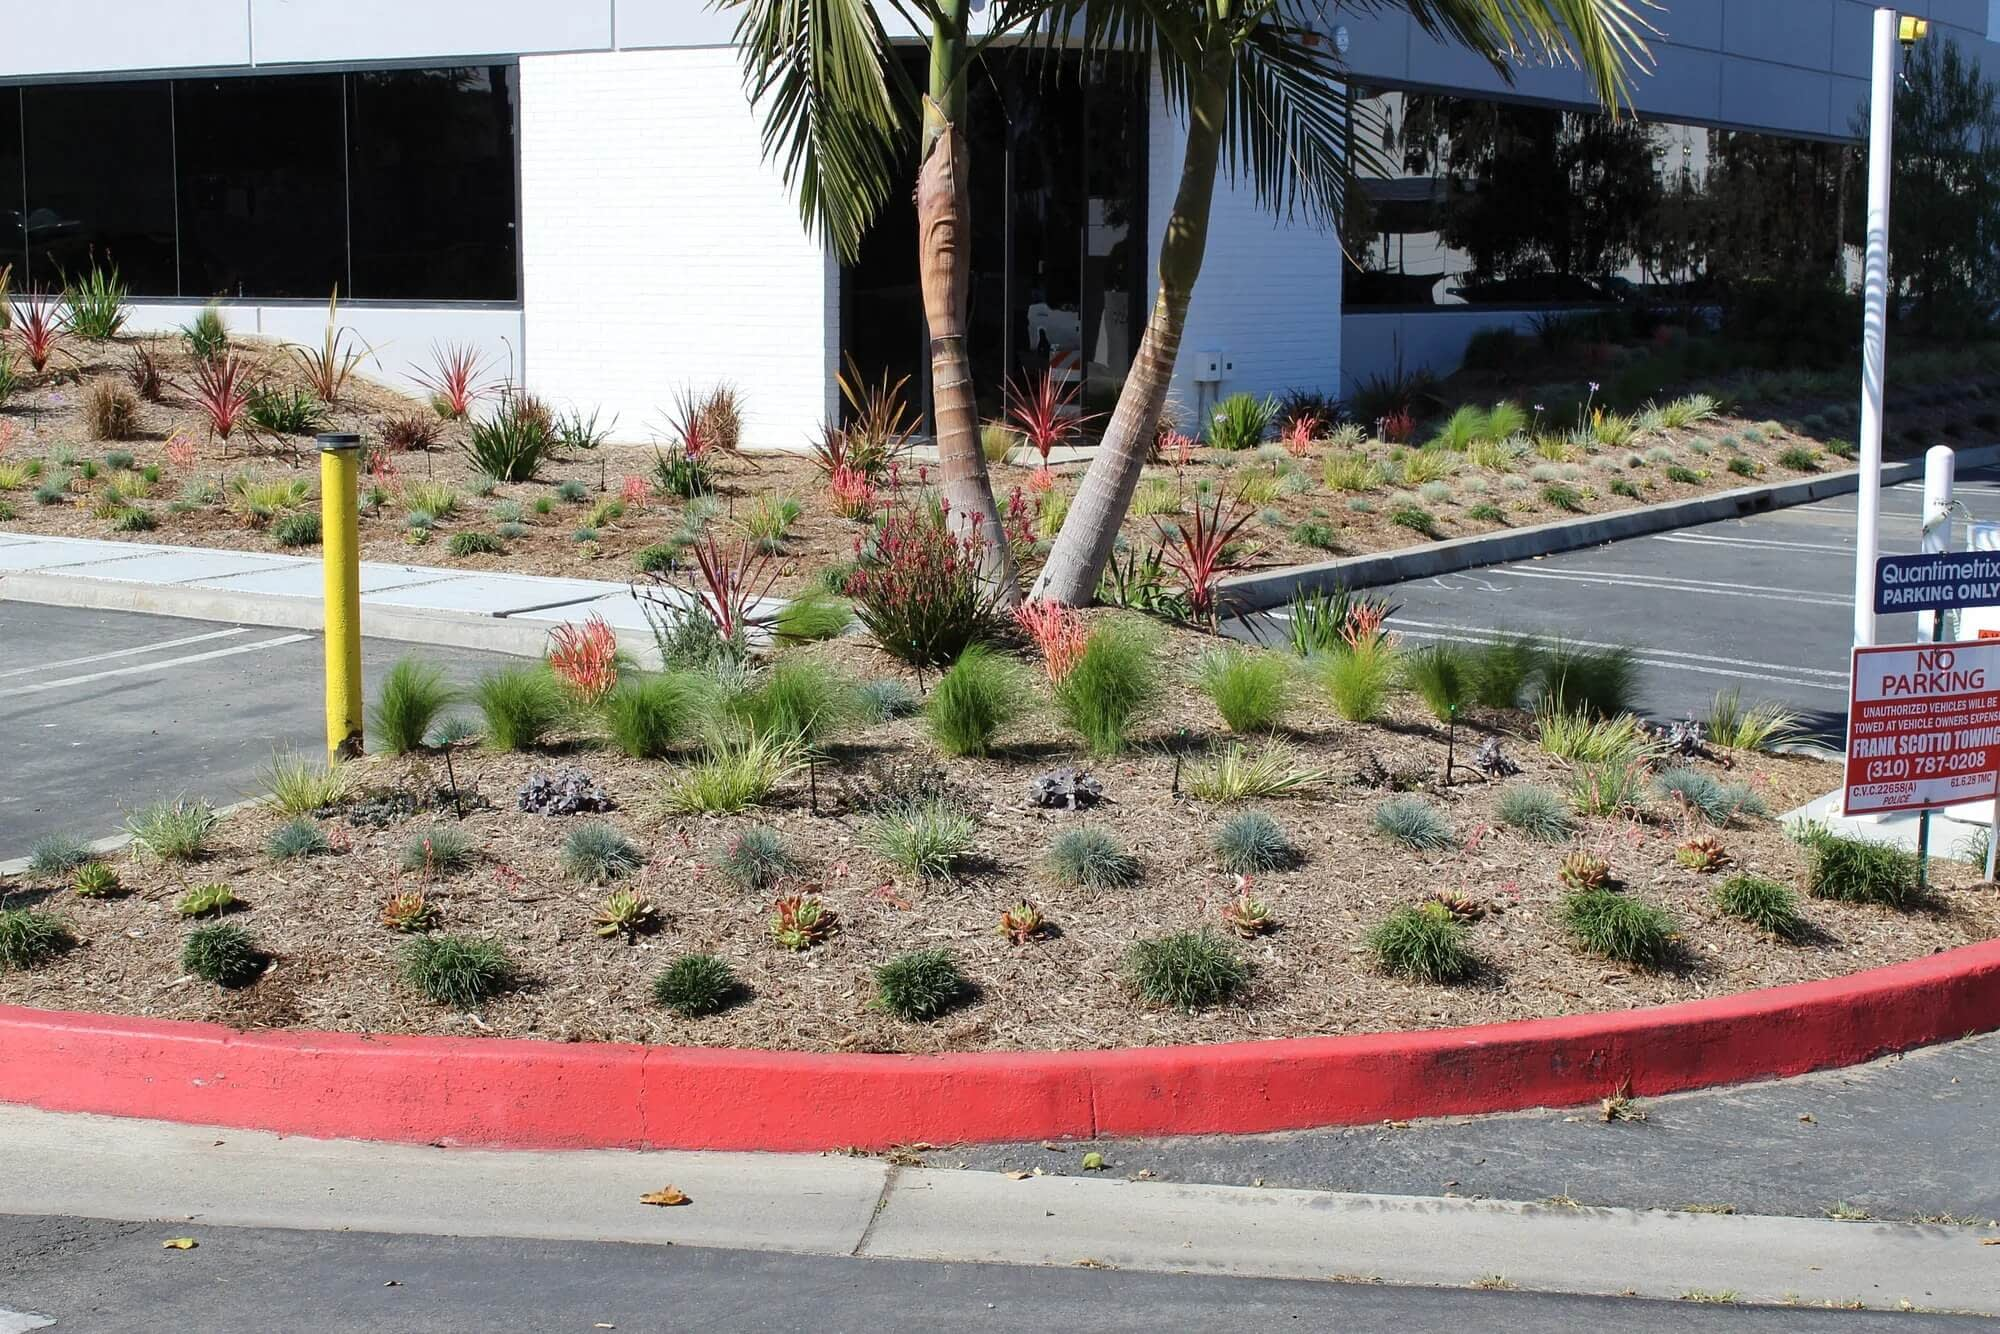 a curved corner in a parking lot with nicely arranged plants